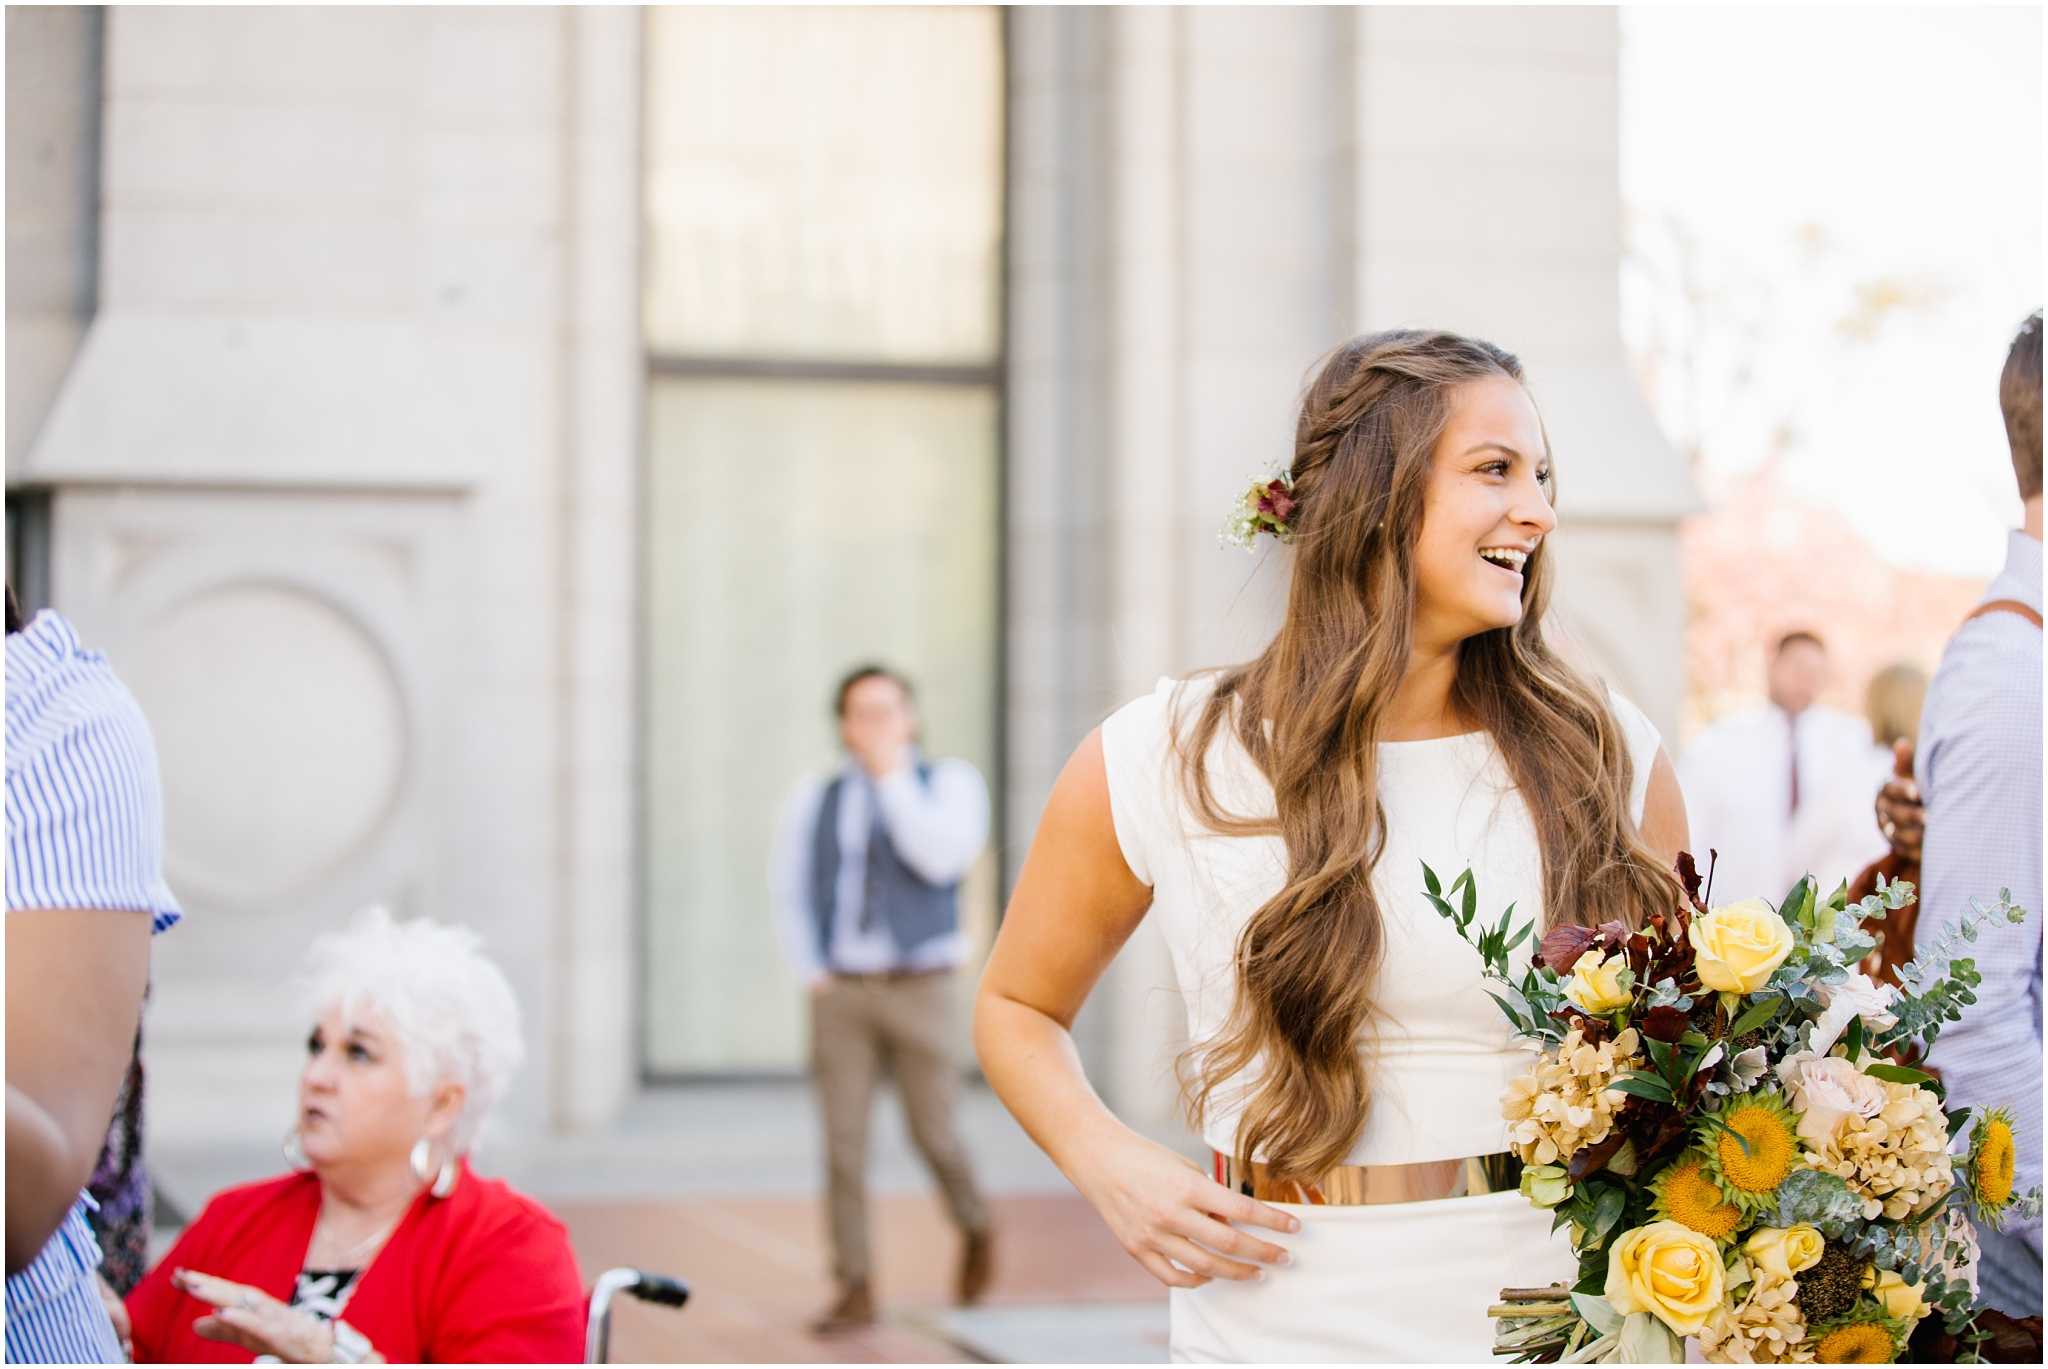 JC-Wedding-61_Lizzie-B-Imagery-Utah-Wedding-Photographer-Salt-Lake-City-Temple-Joseph-Smith-Memorial-Building-Reception.jpg